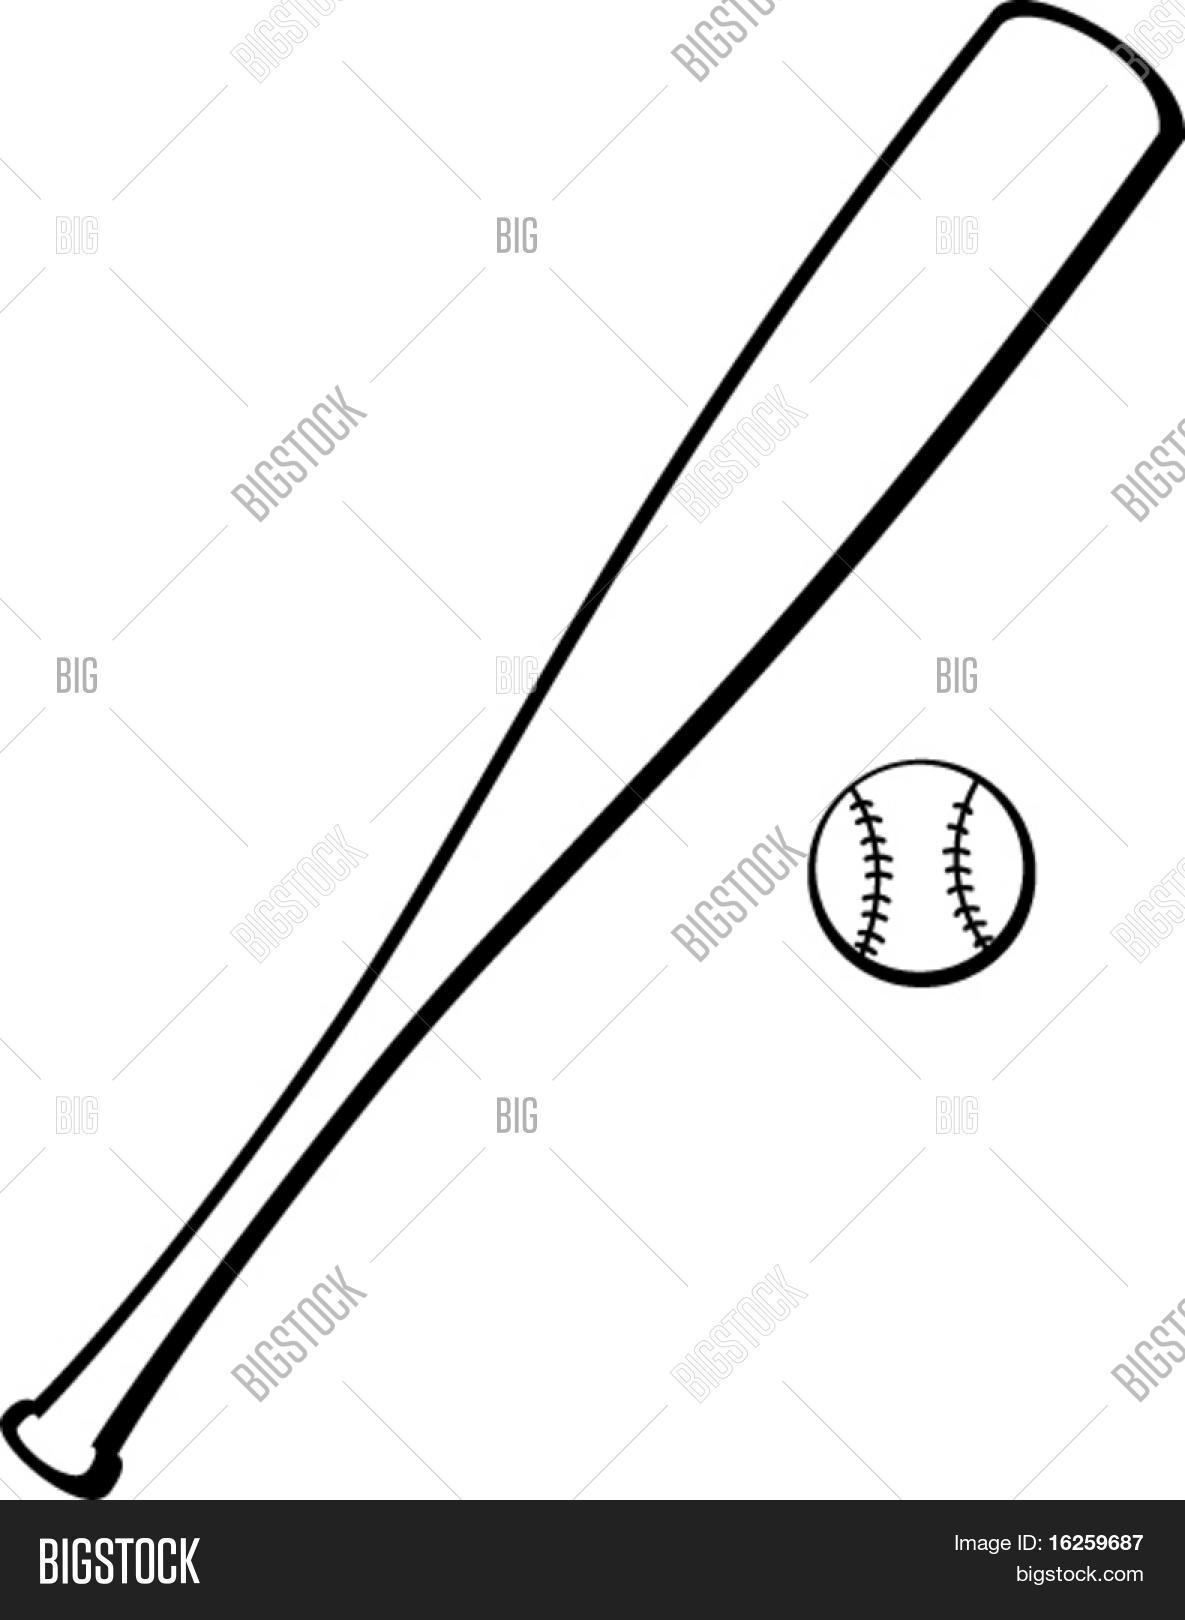 1185x1620 Baseball Bat Ball Vector Amp Photo Bigstock